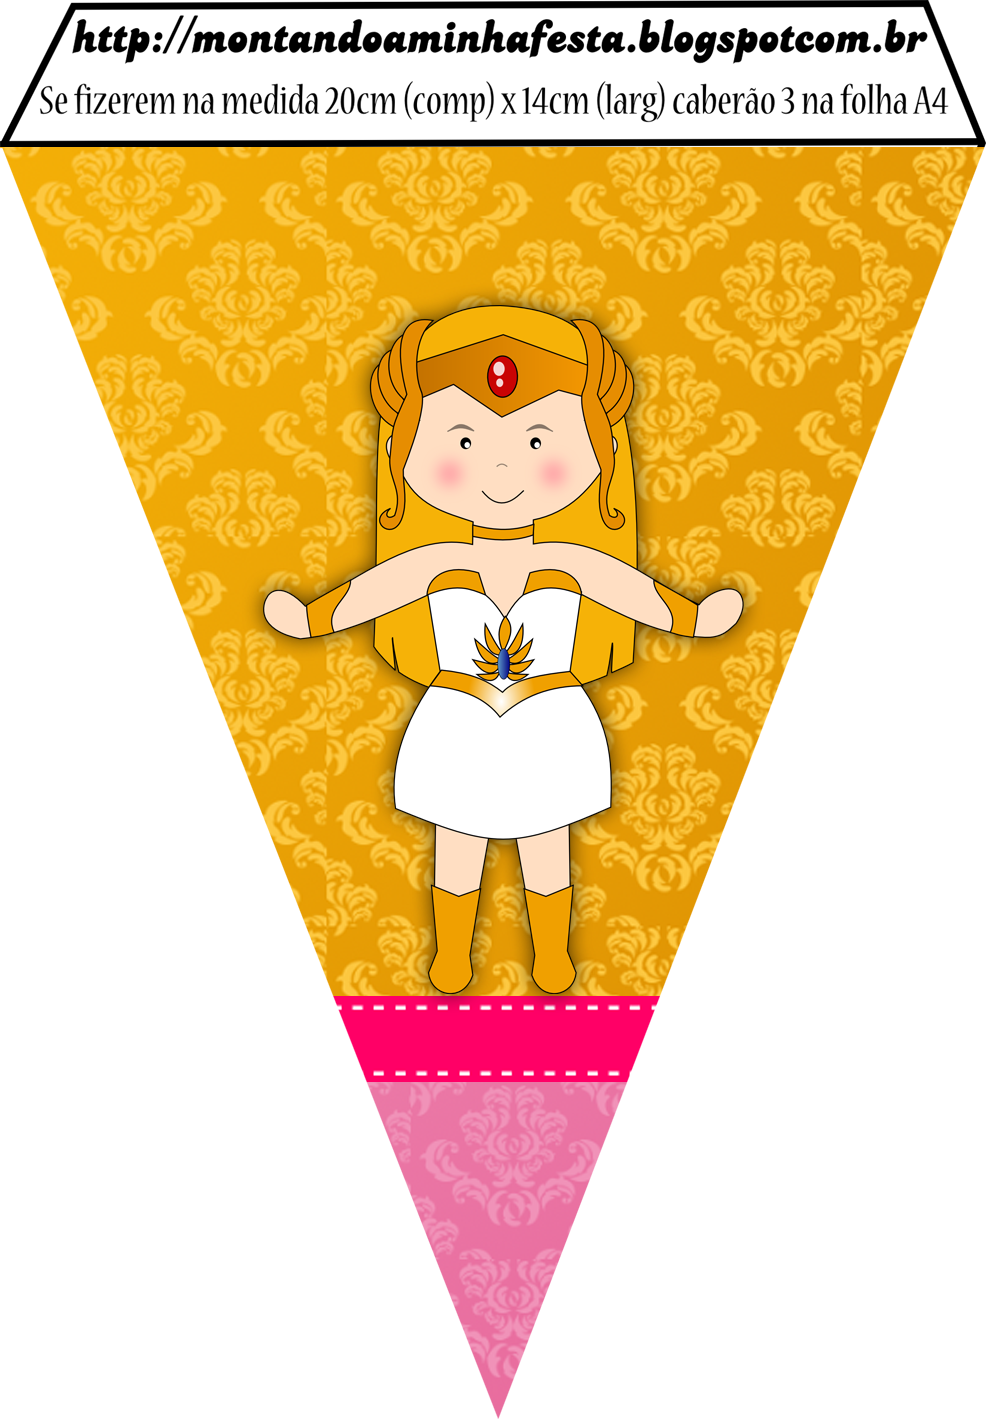 She Ra Baby Free Party Printables Oh My Fiesta For Geeks